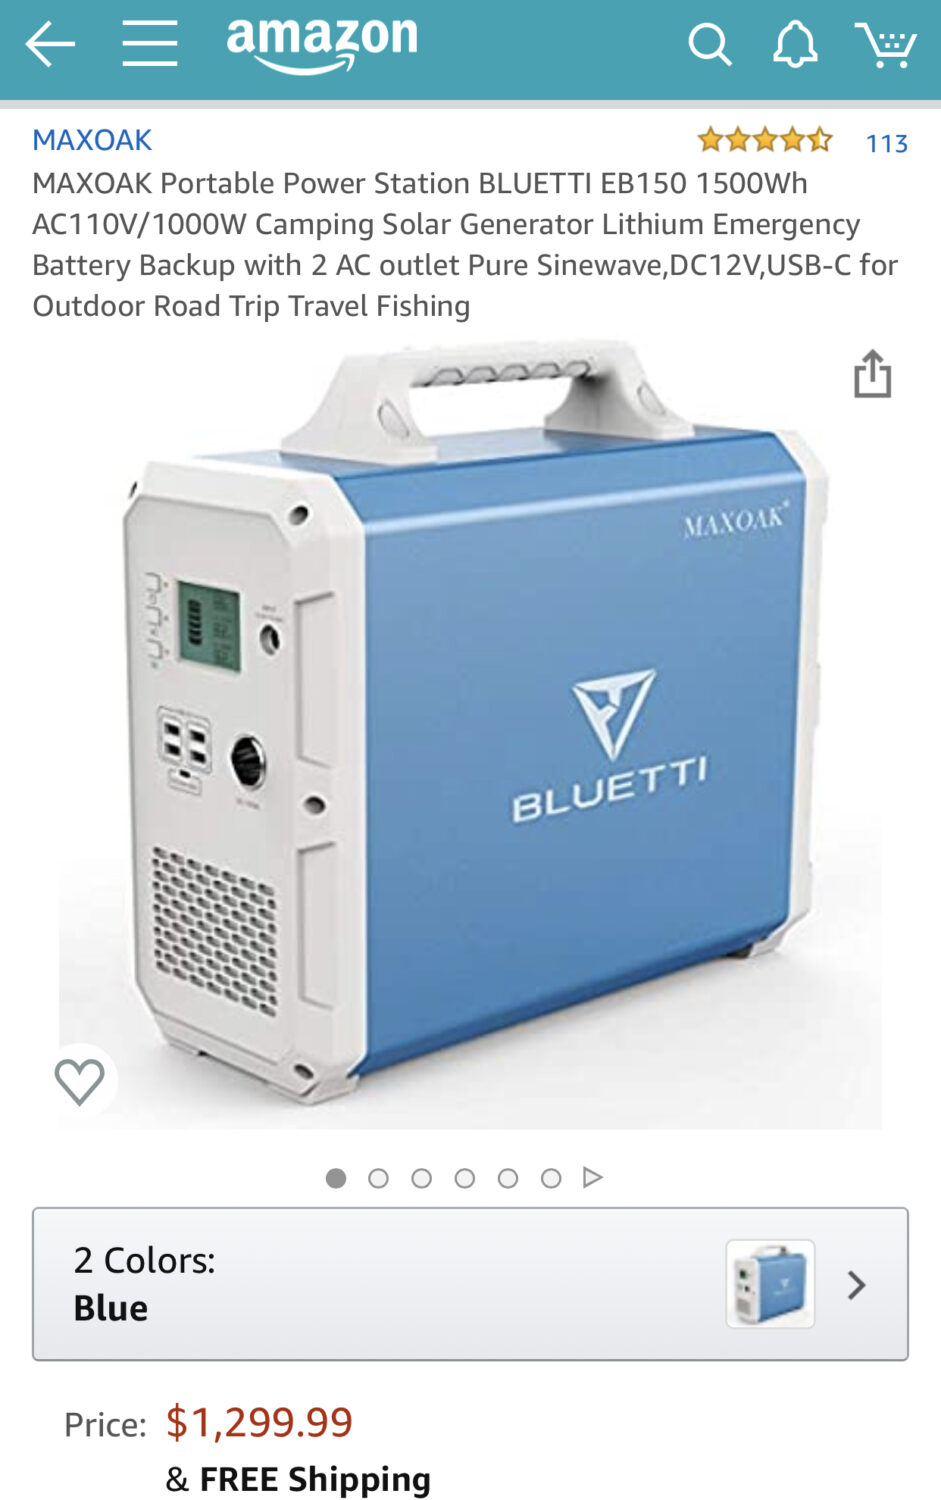 This Bluetti solar generator is the one I purchased, and also ultimately returned through no fault of MAXOAK.